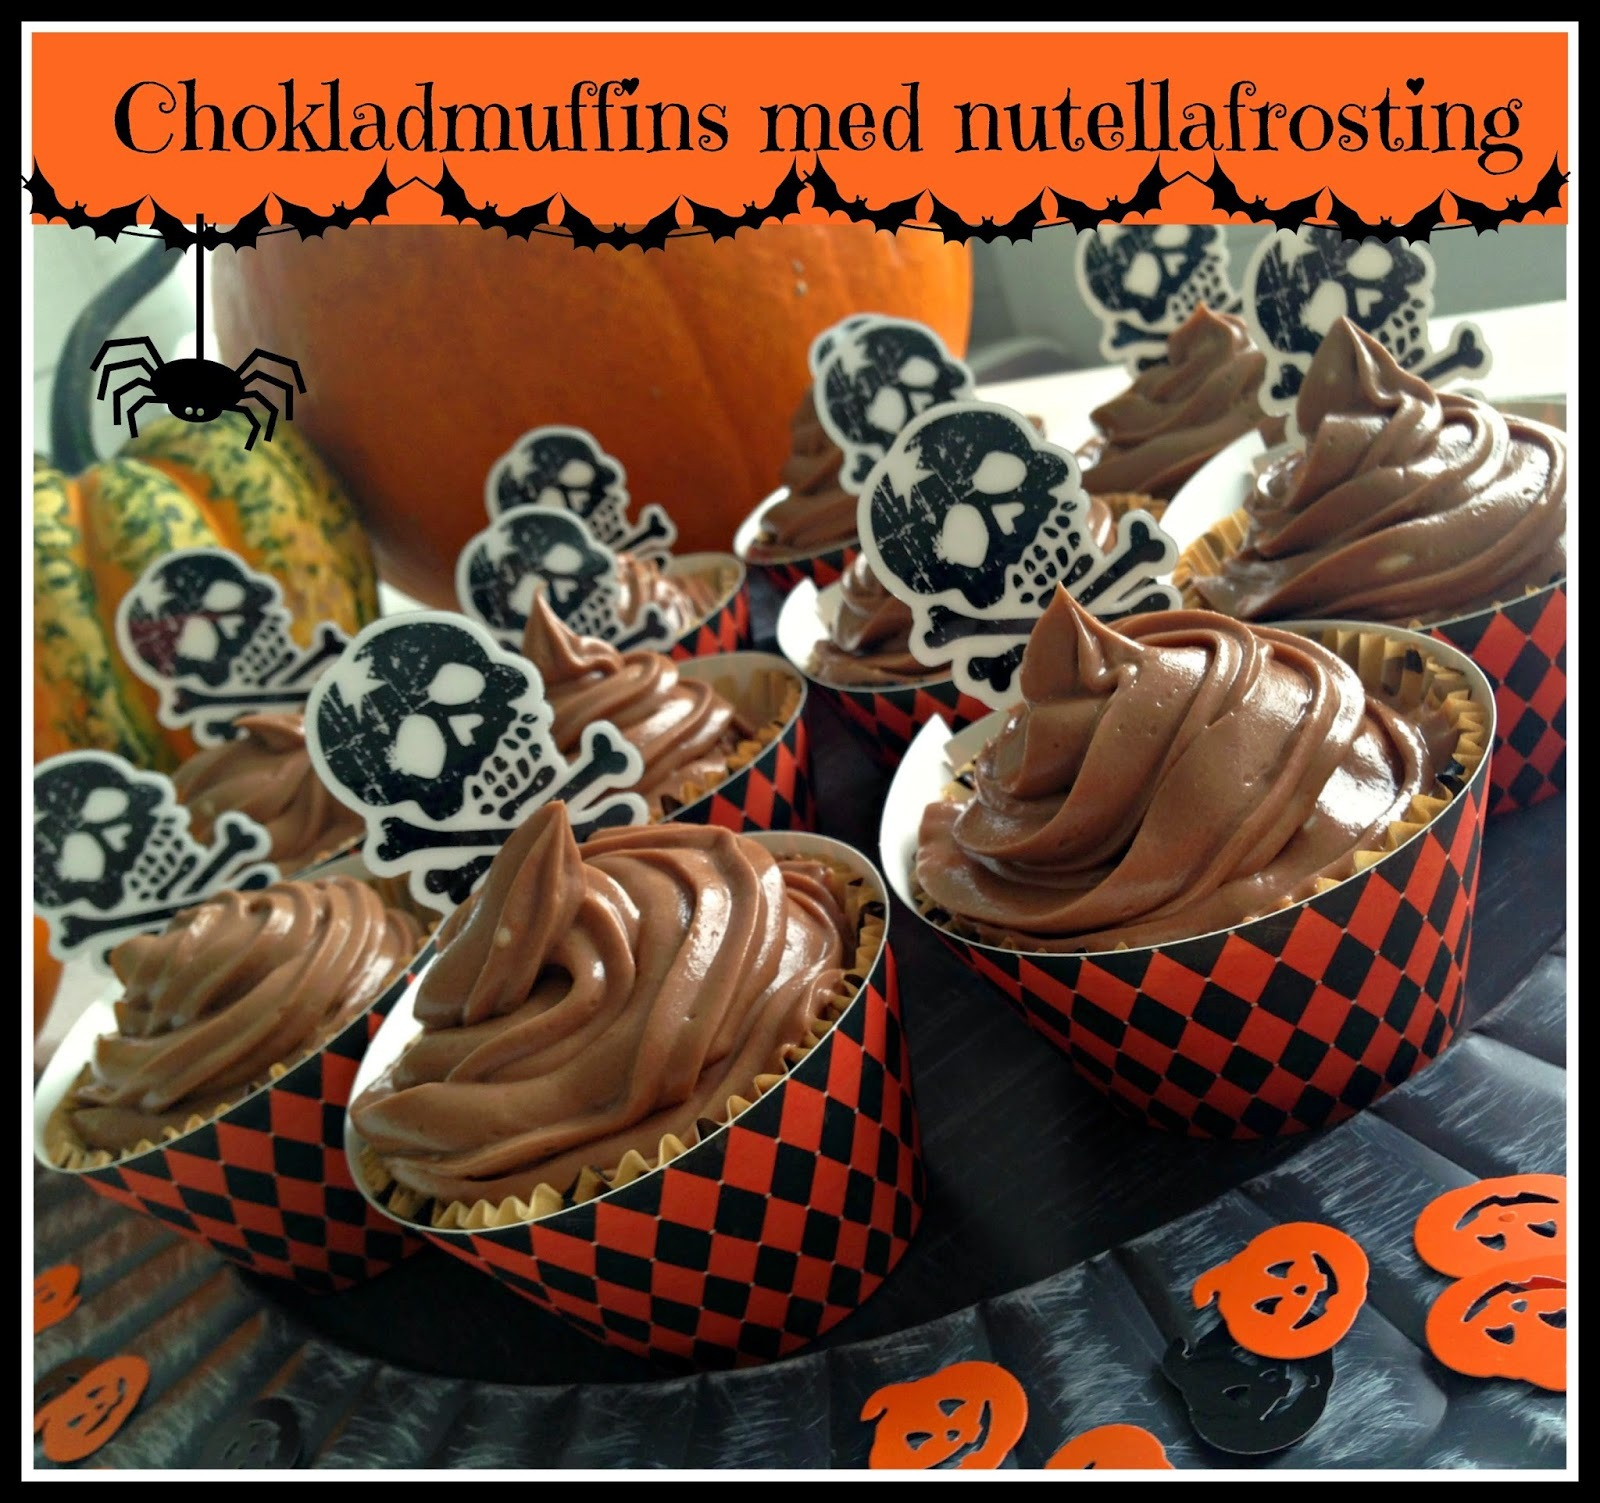 Chokladmuffins med nutellafrosting